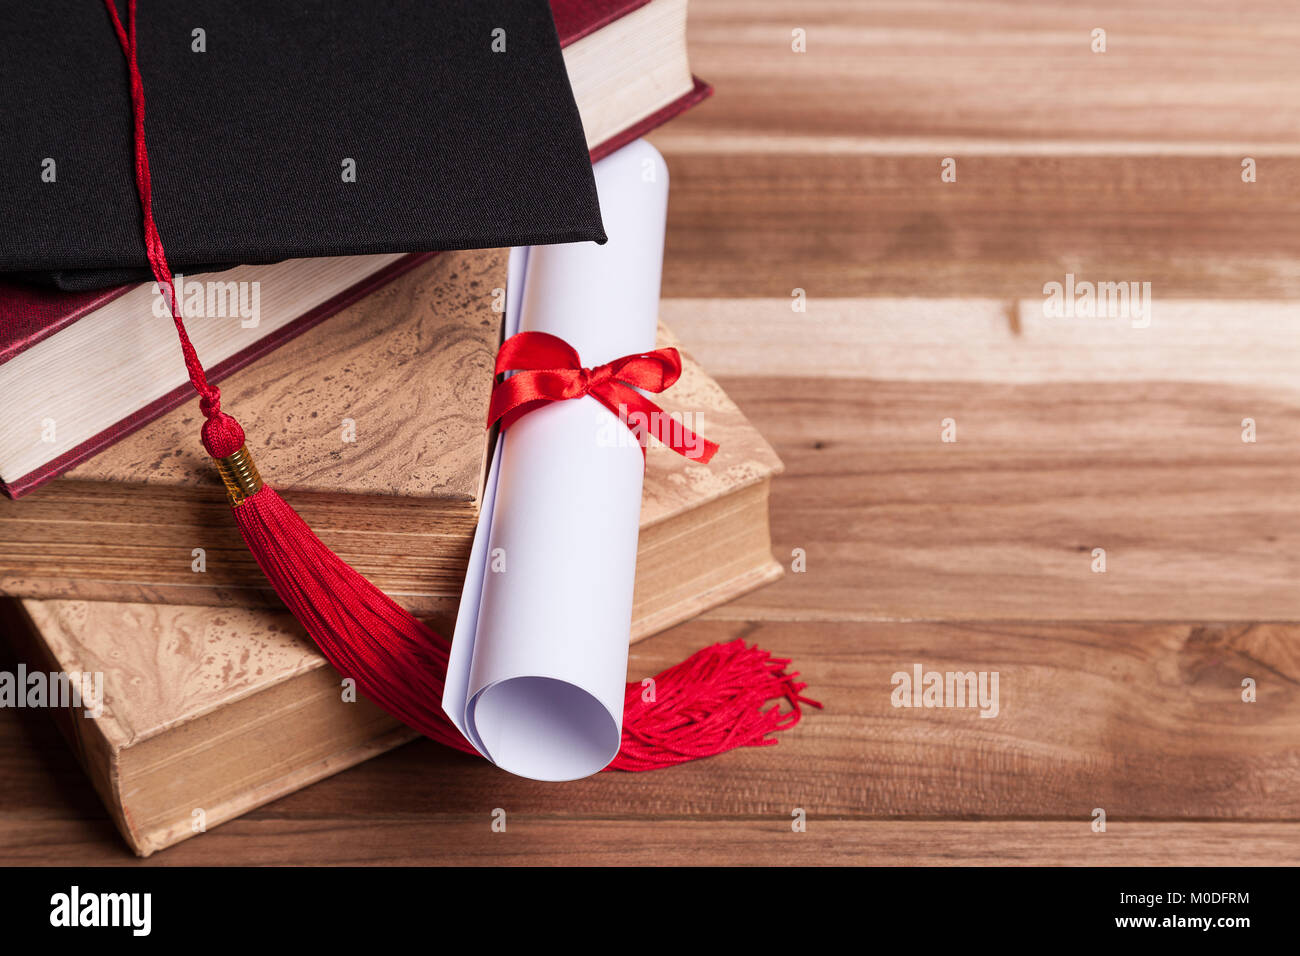 Black graduation cap and diploma on a stack of books - Stock Image